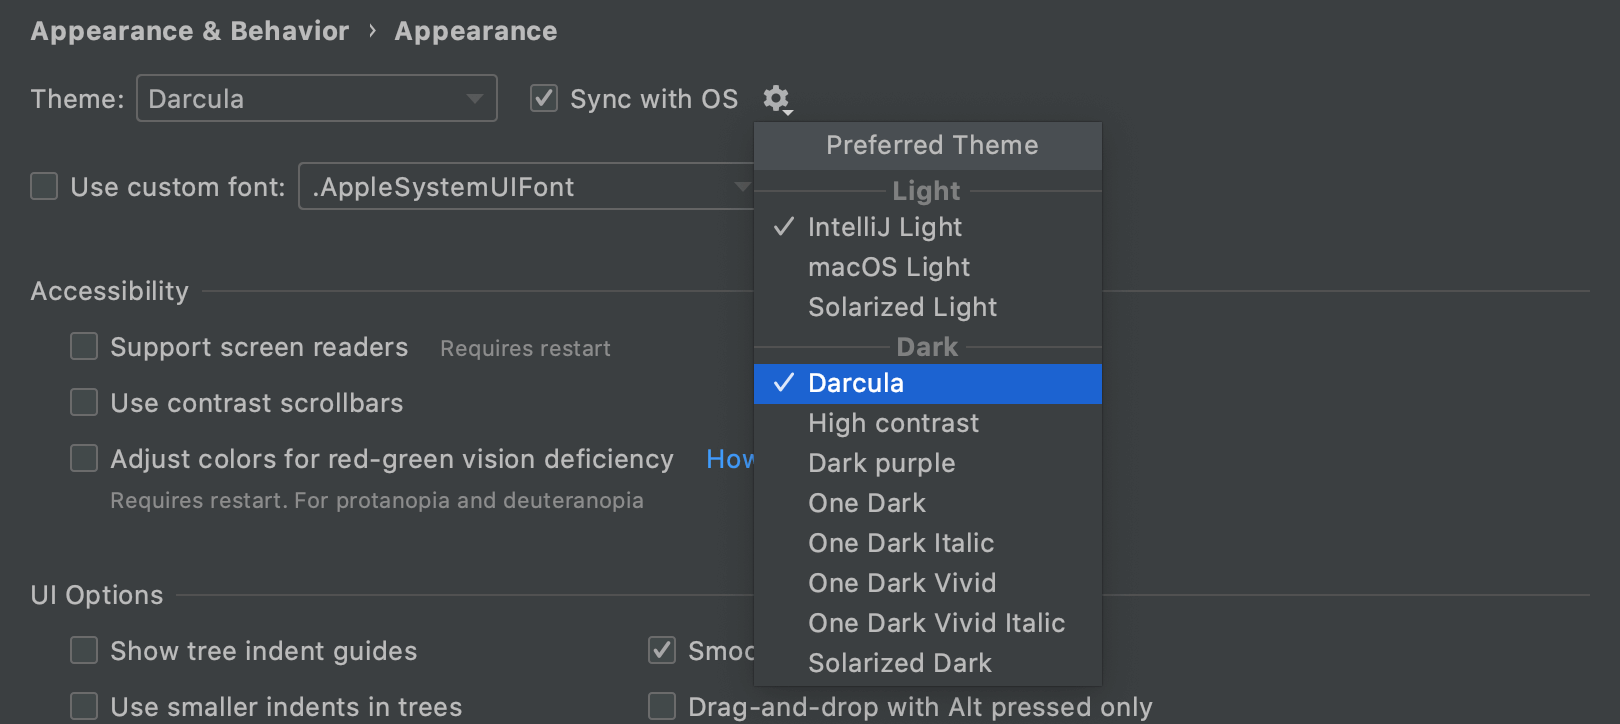 IDE theme synced with OS settings